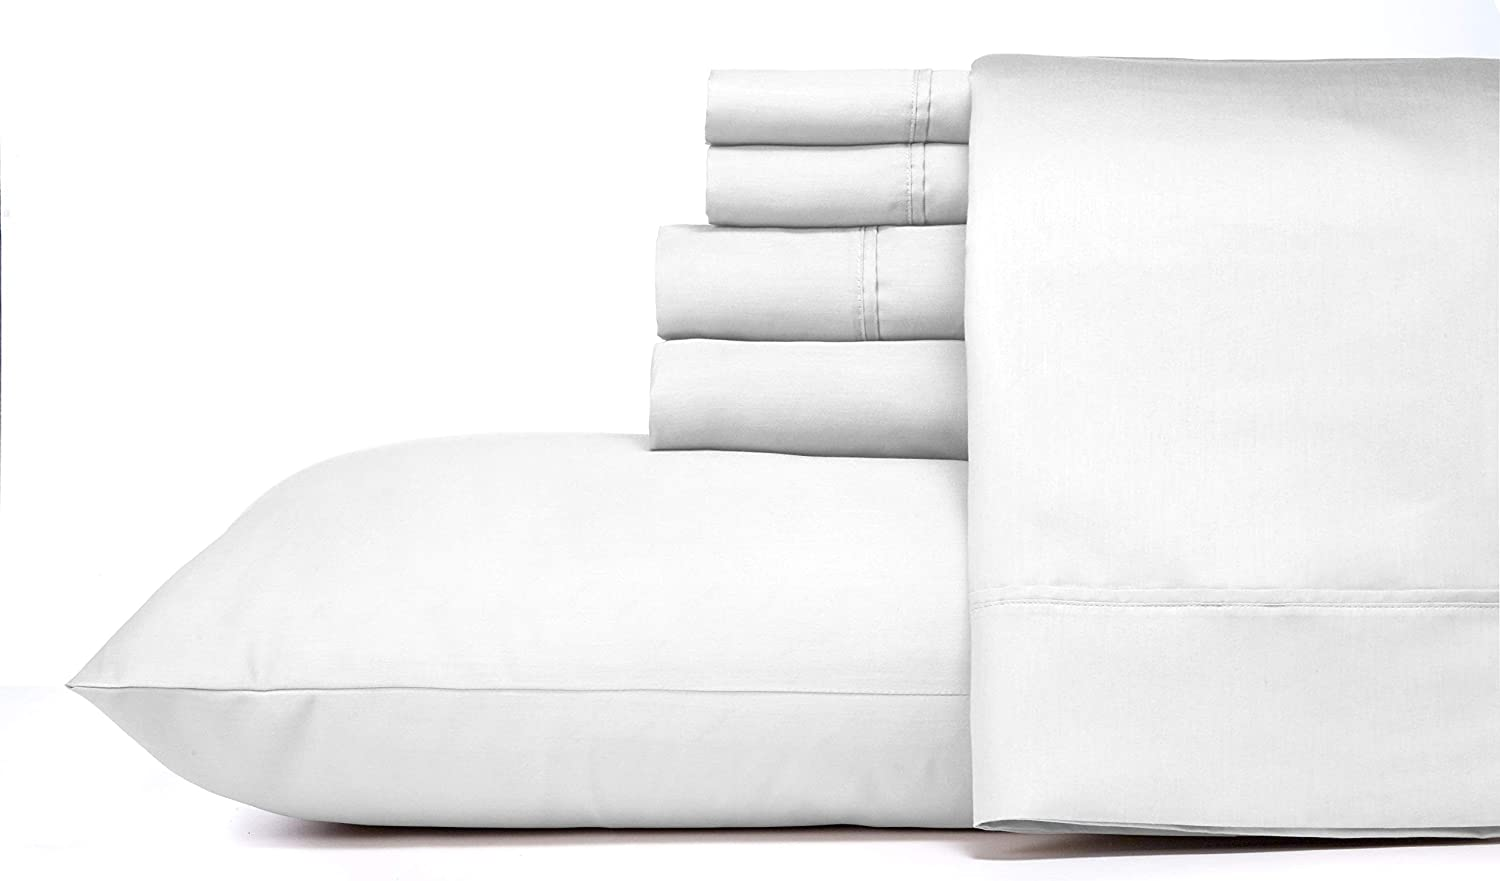 Blissful Living 800 Thread Count Cotton Rich 4-6 Piece Sheet Set - Includes Extra Pillowcase(S)! Super Soft, Hotel Quality Luxury (Twin, Off-White)